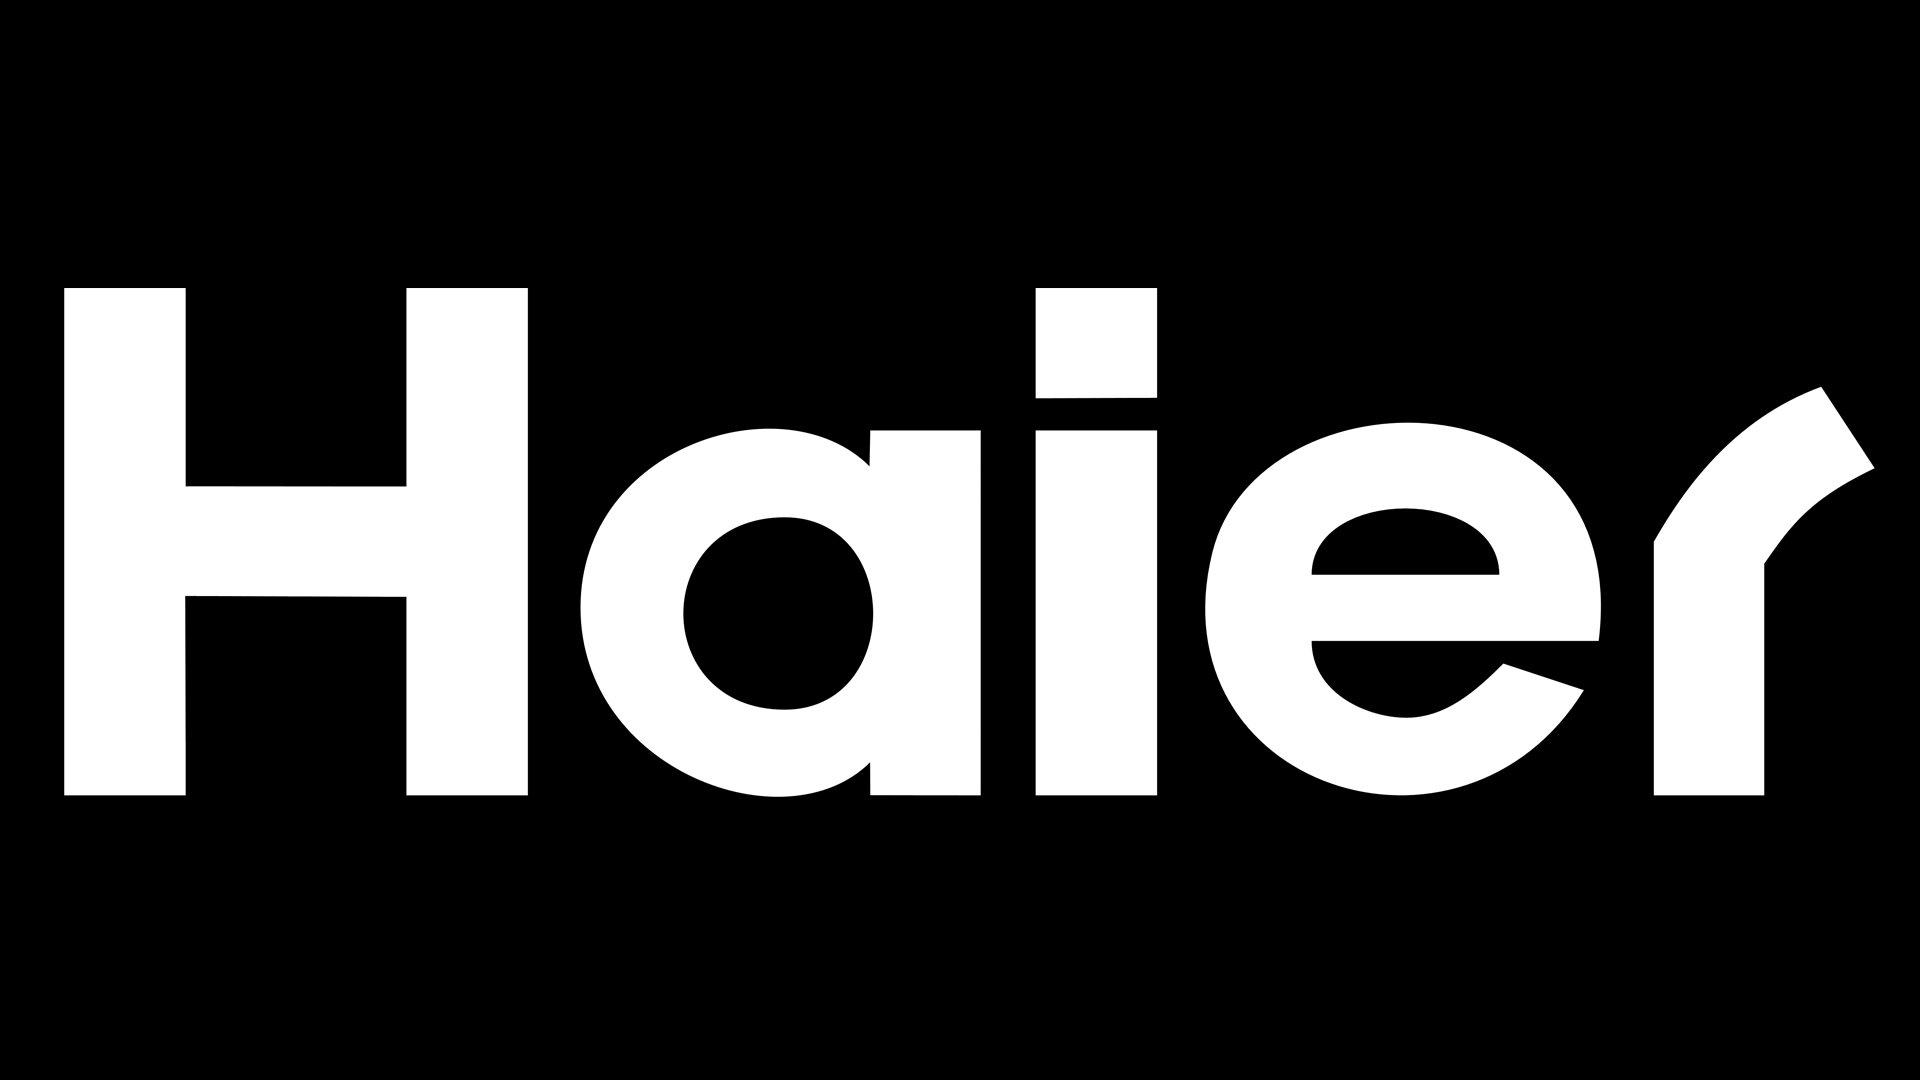 history of haier Although at first glance, the haier logotype may seem somewhat plain, if you take a closer look, you will notice the unique features making it recognizable.